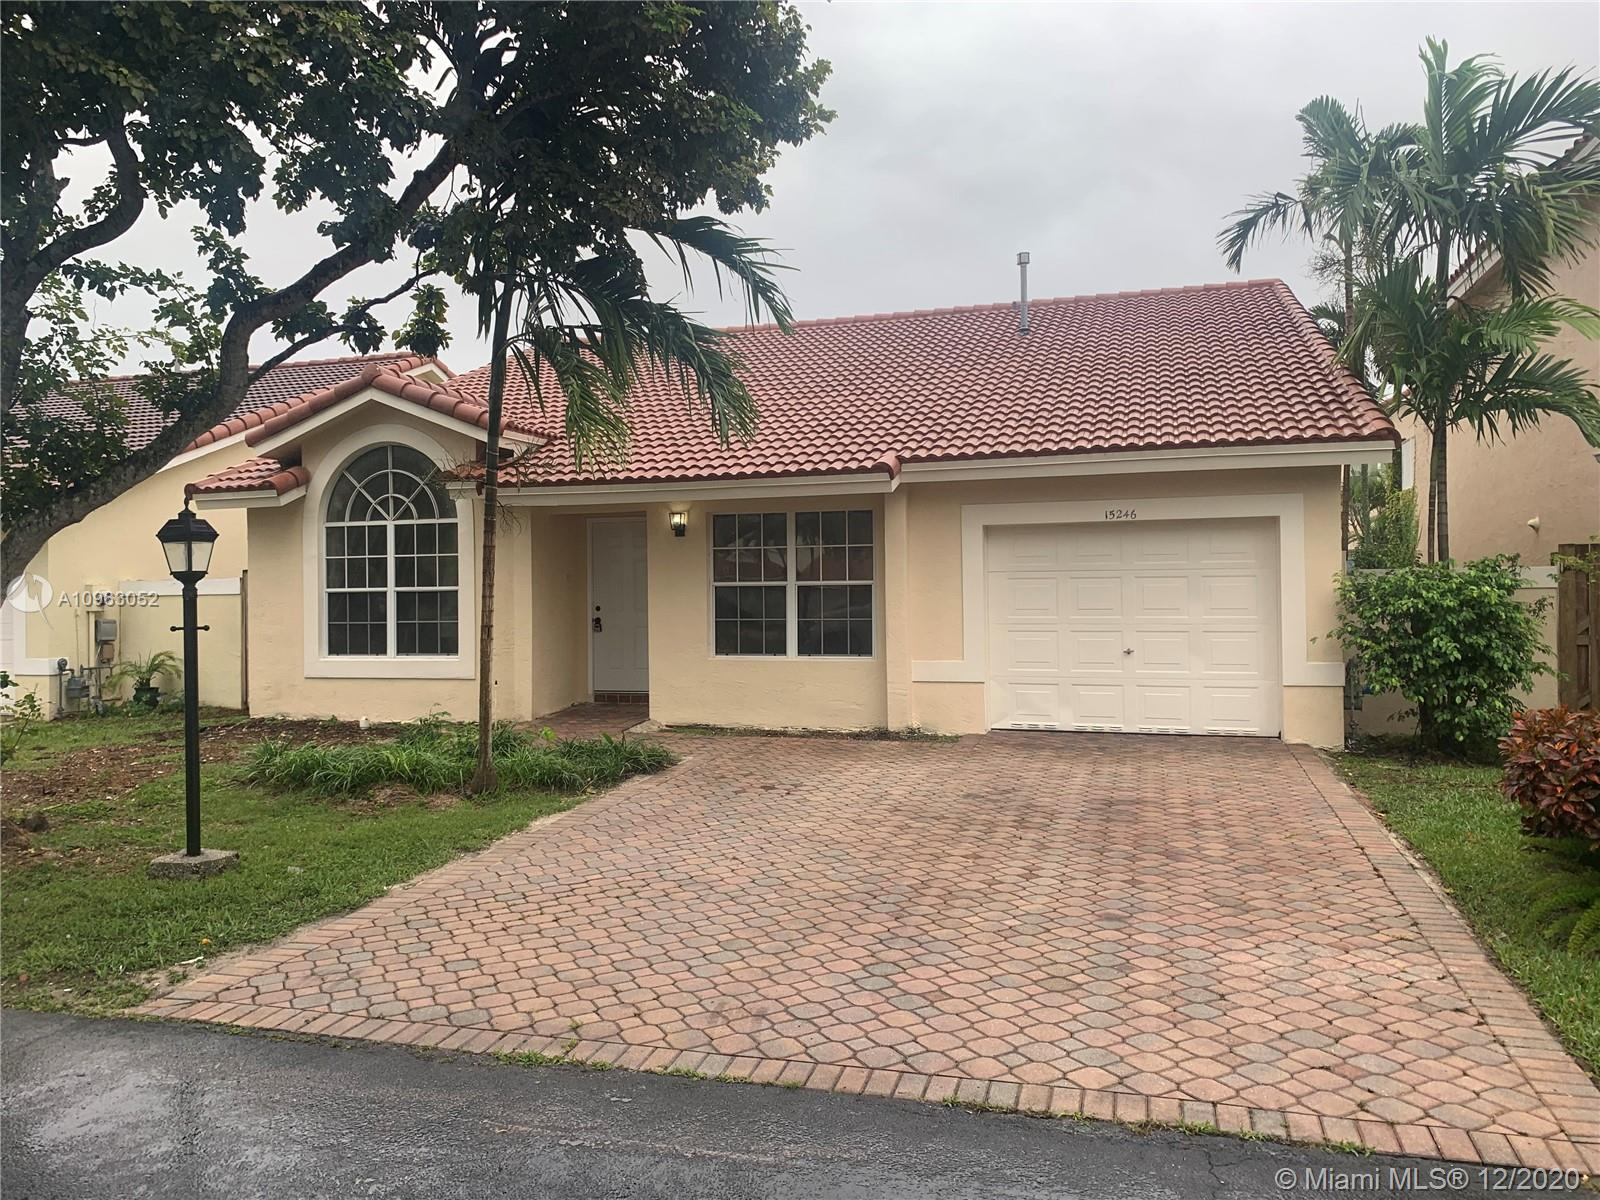 15246 SW 108th Ter, Miami, Florida 33196, 3 Bedrooms Bedrooms, ,2 BathroomsBathrooms,Residential,For Sale,15246 SW 108th Ter,A10963052